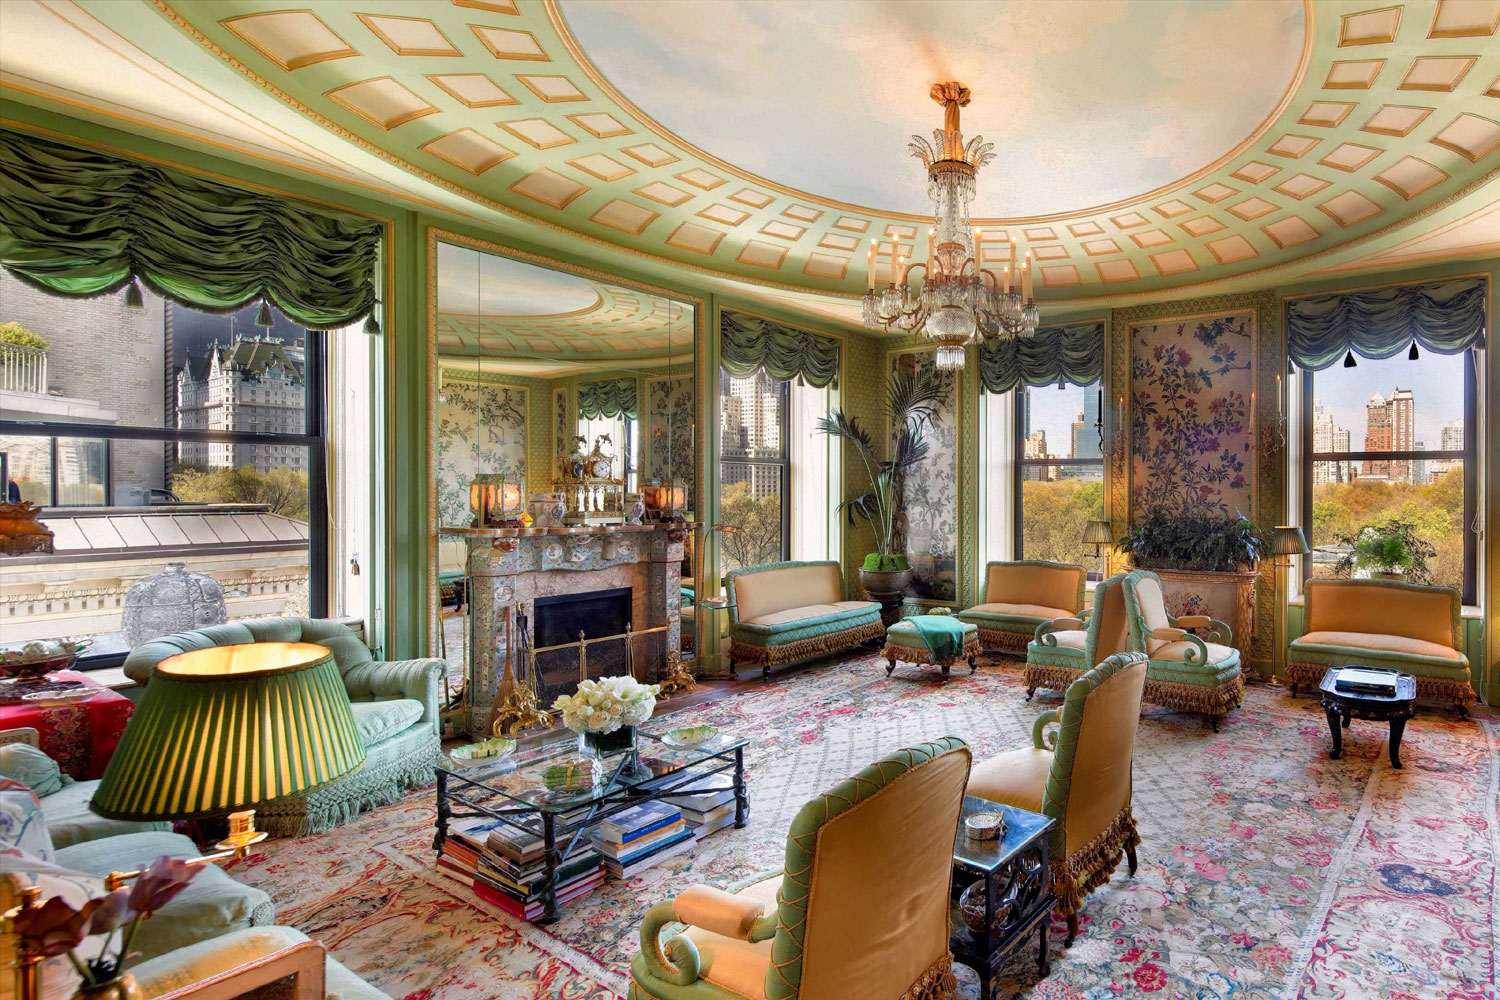 834 Fifth Avenue, a $120 million listing in New York City